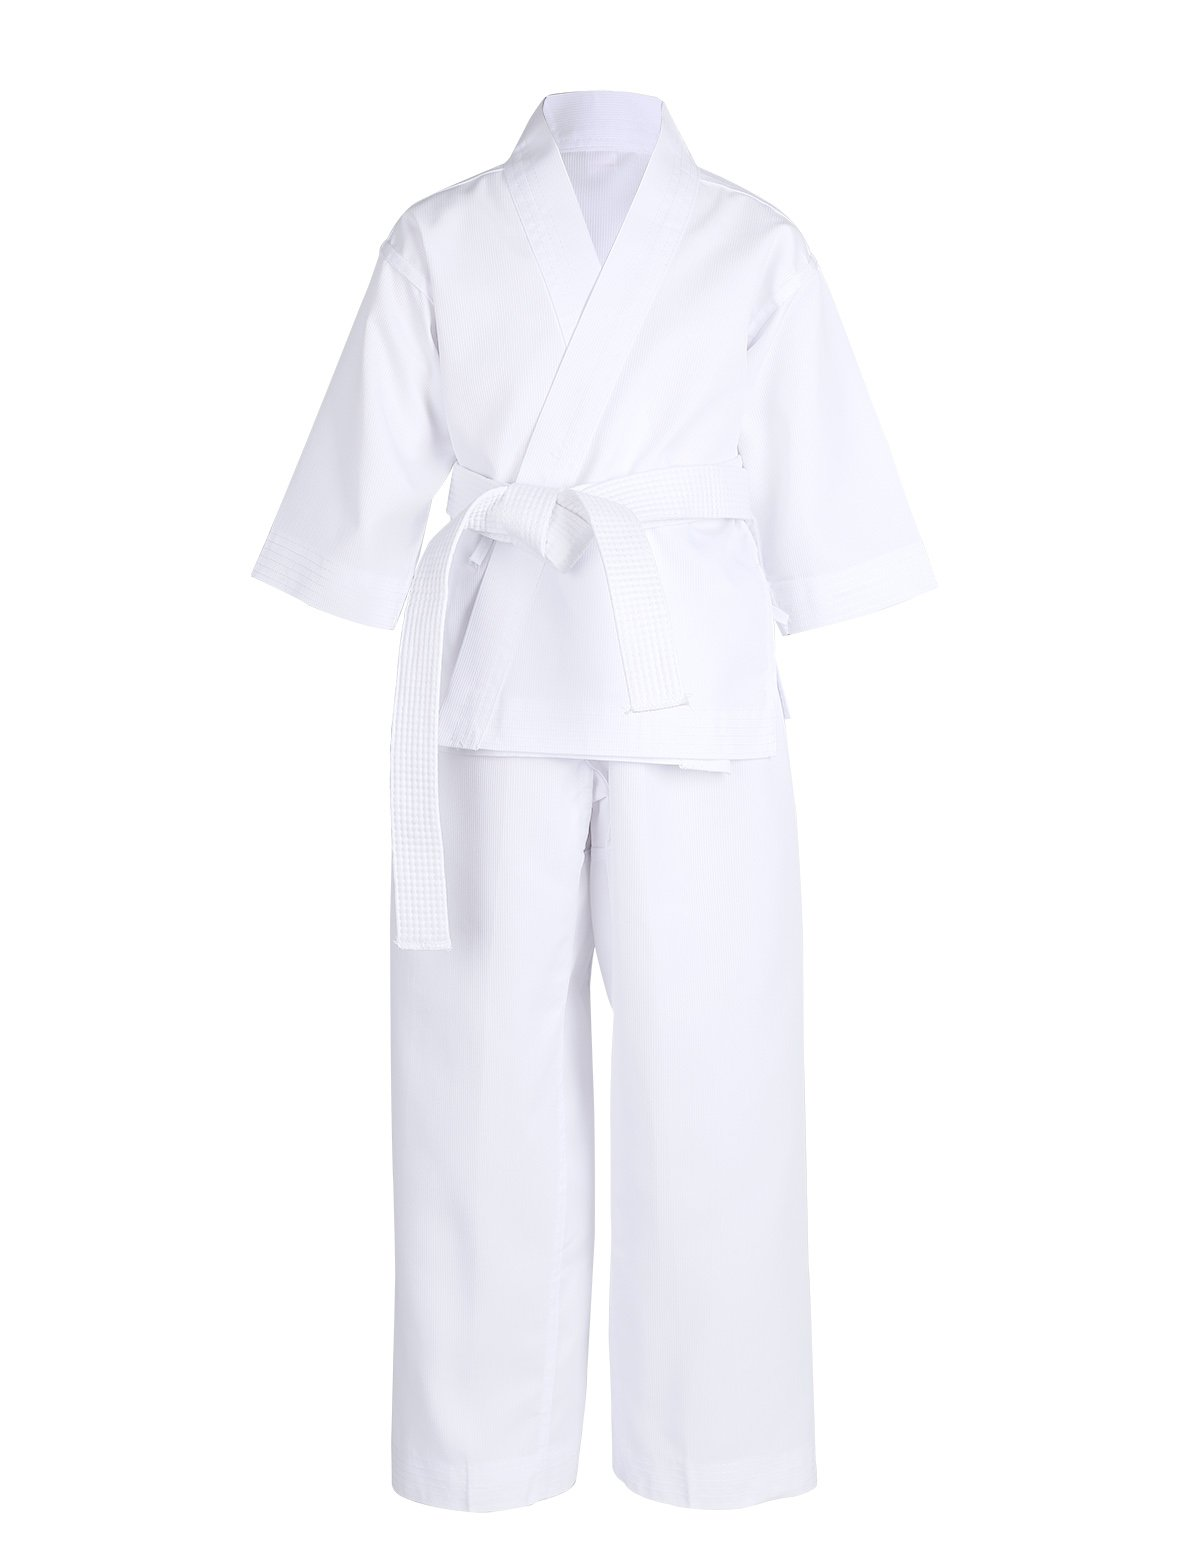 YiZYiF Kids Adults Martial Arts Middleweight Ultra Breathe Karate Gi Student Uniform Training Clothes with Elastic Pant Belt White 00/Kids 5-6